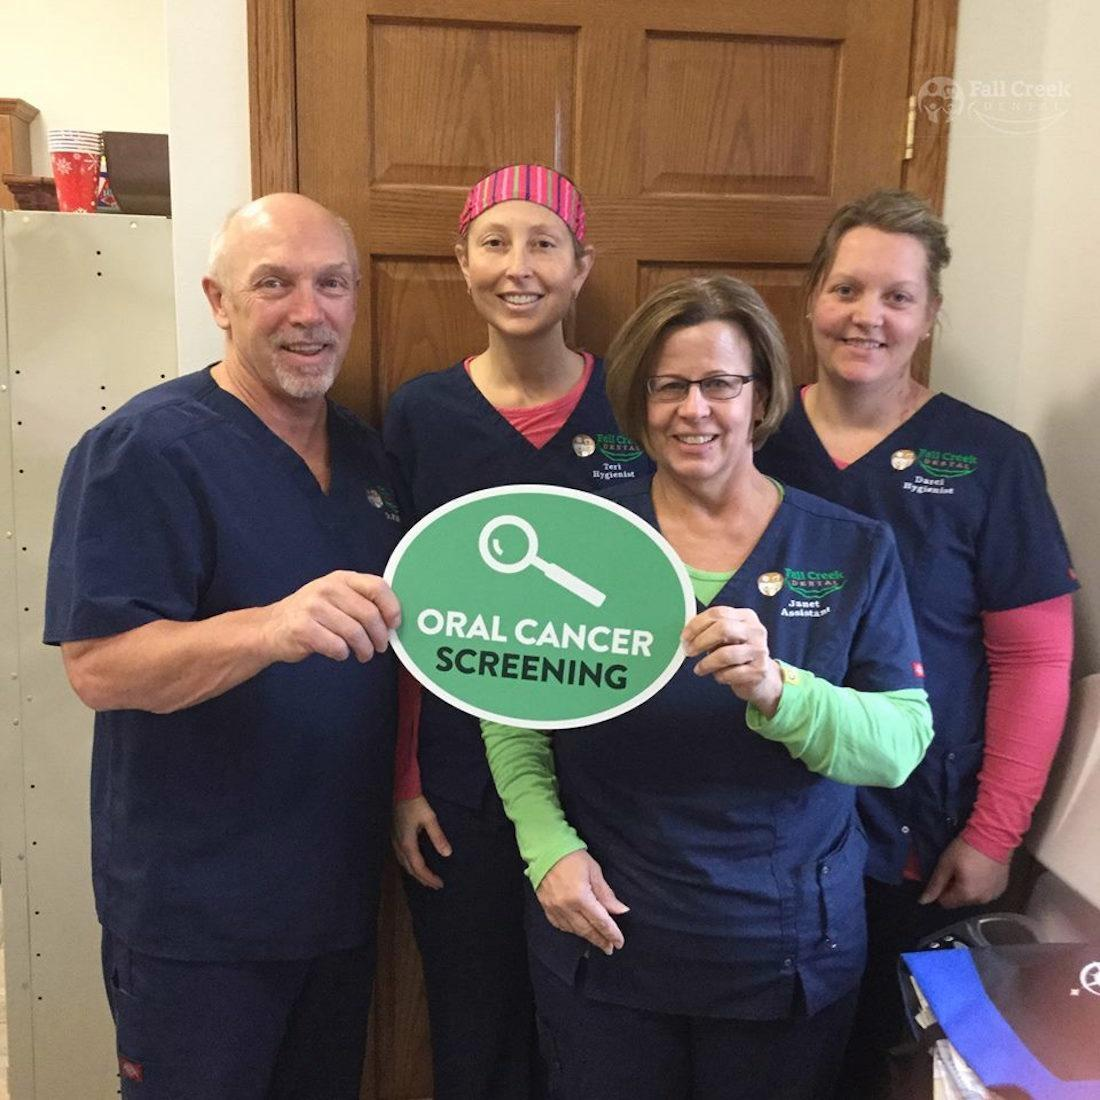 Dr. Pilgrim and the team. Now offering cancer screenings using Velscope!